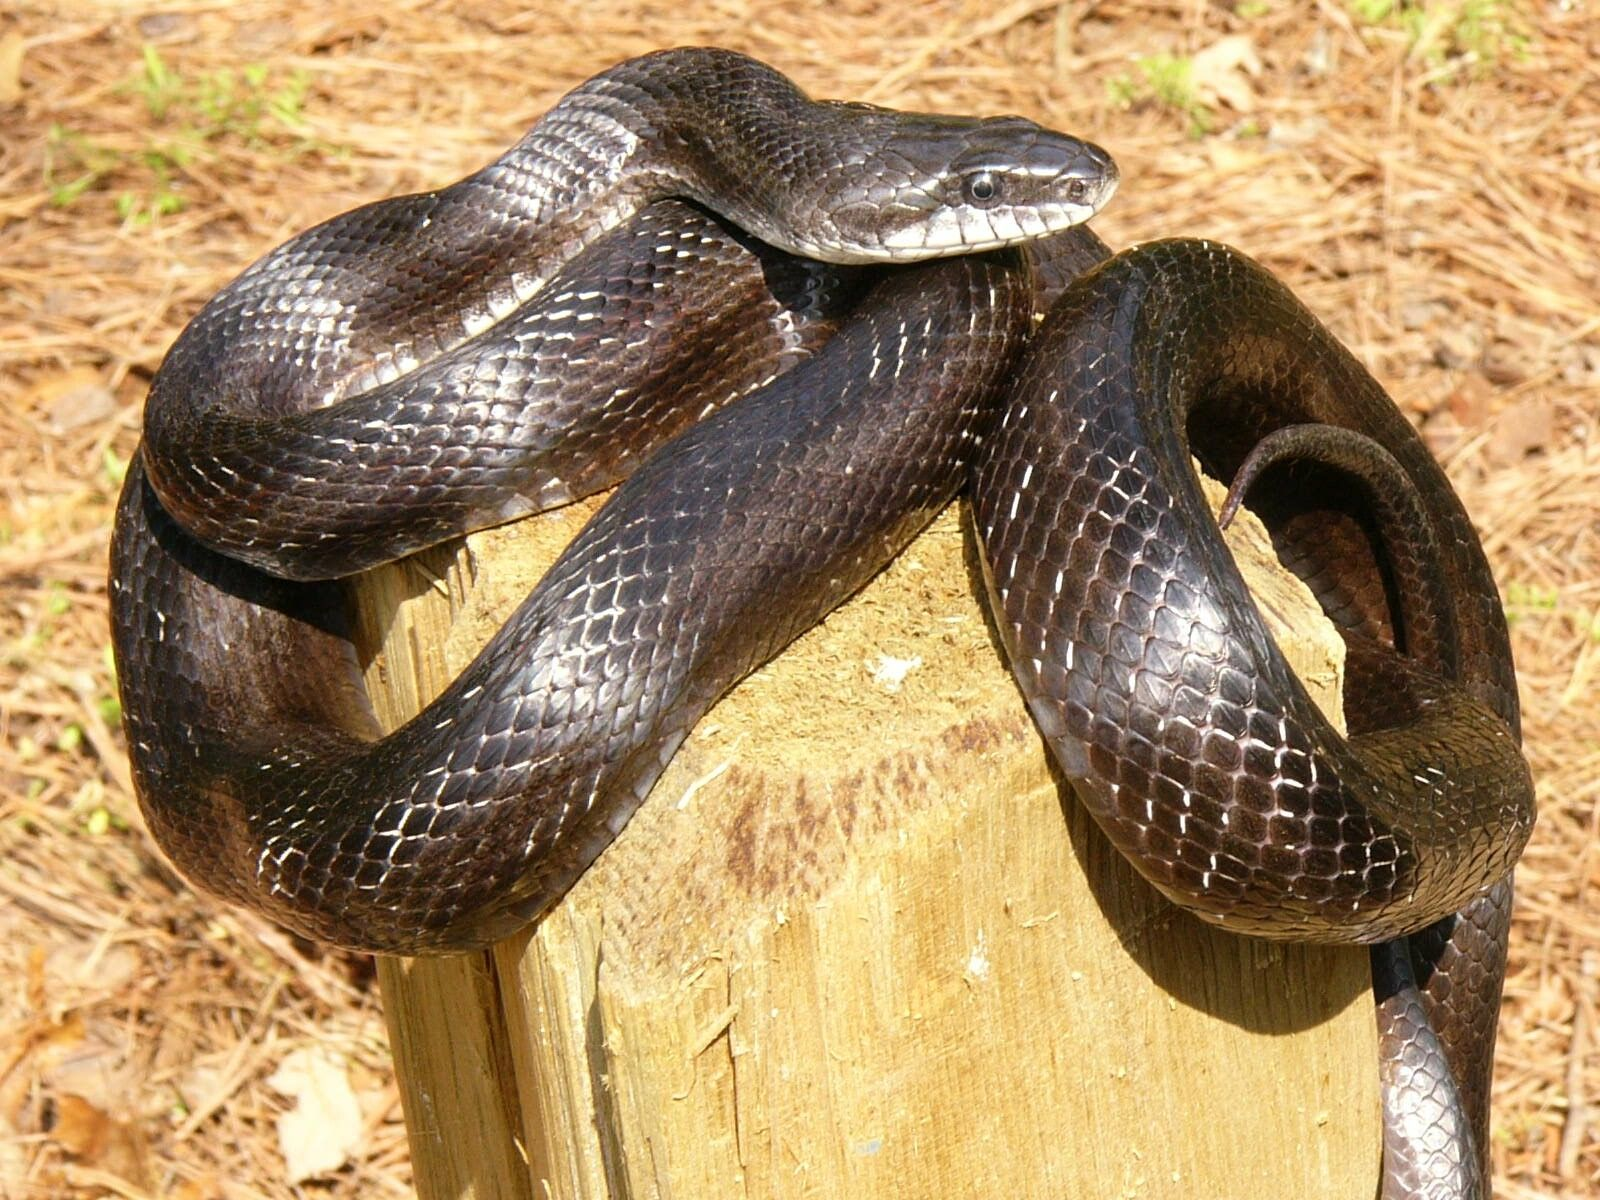 Known for its climbing ability, the harmless black rat snake is notorious for accidentally crawling inside people's homes. (Photo/John Jensen, Georgia DNR)